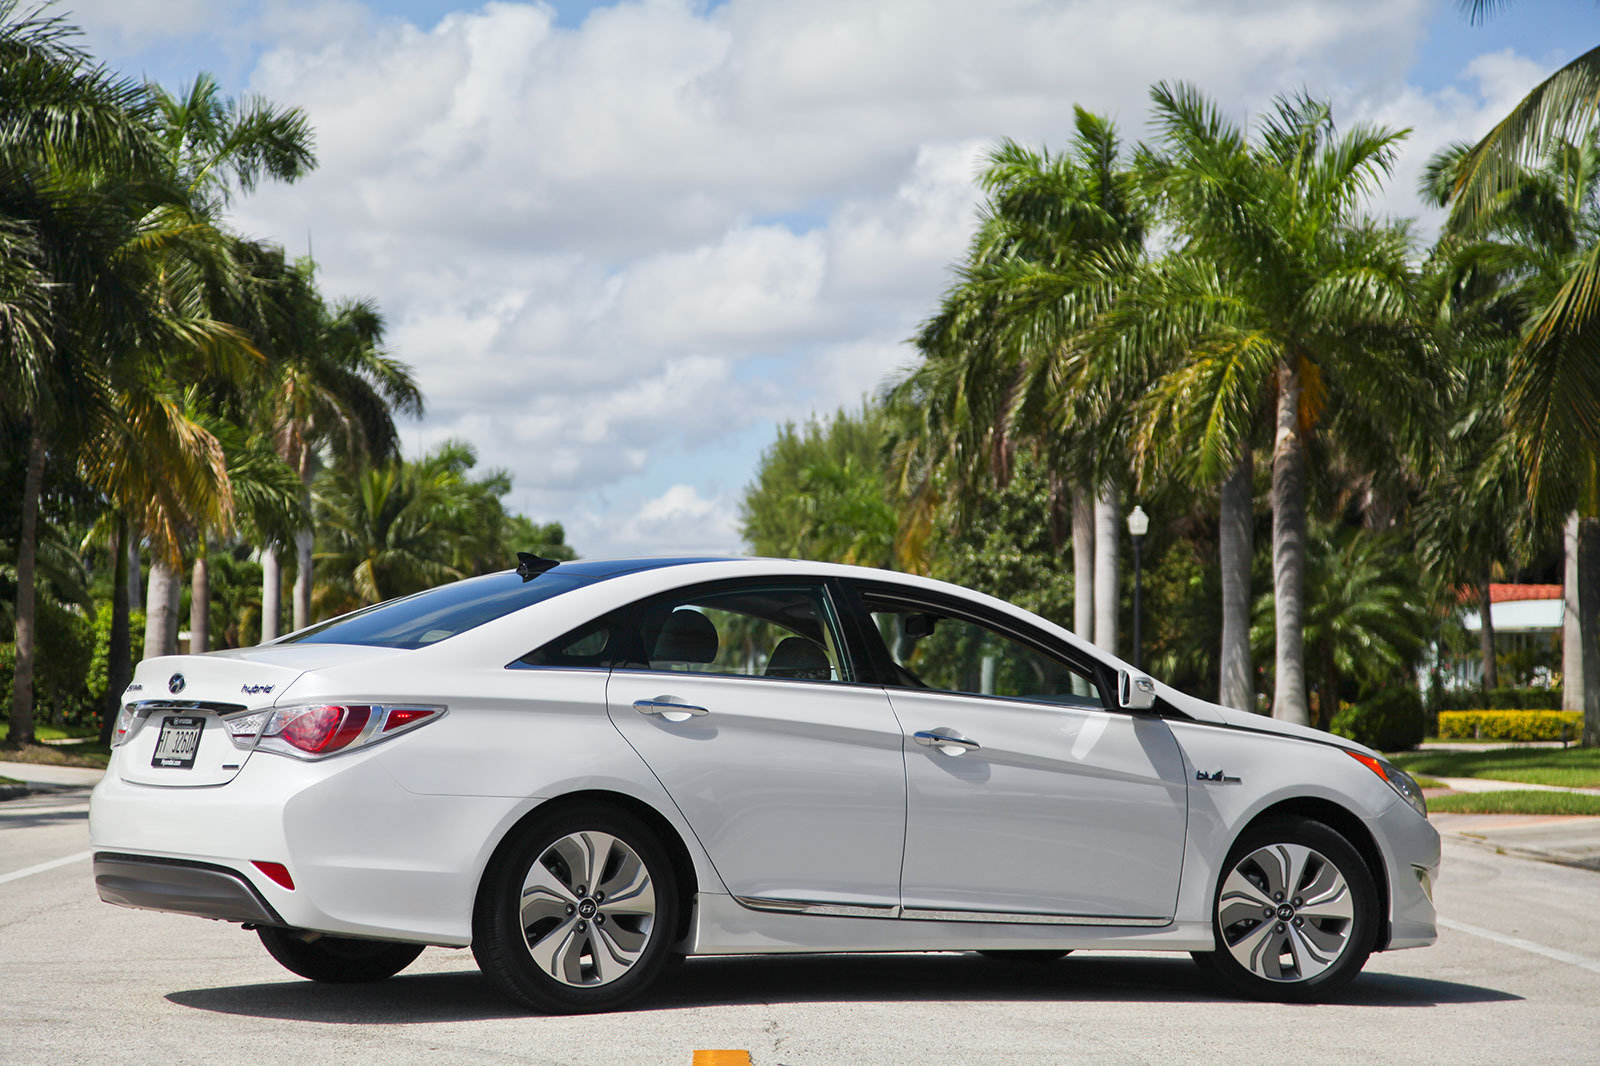 2013 hyundai sonata hybrid limited picture 526976 car review top speed. Black Bedroom Furniture Sets. Home Design Ideas